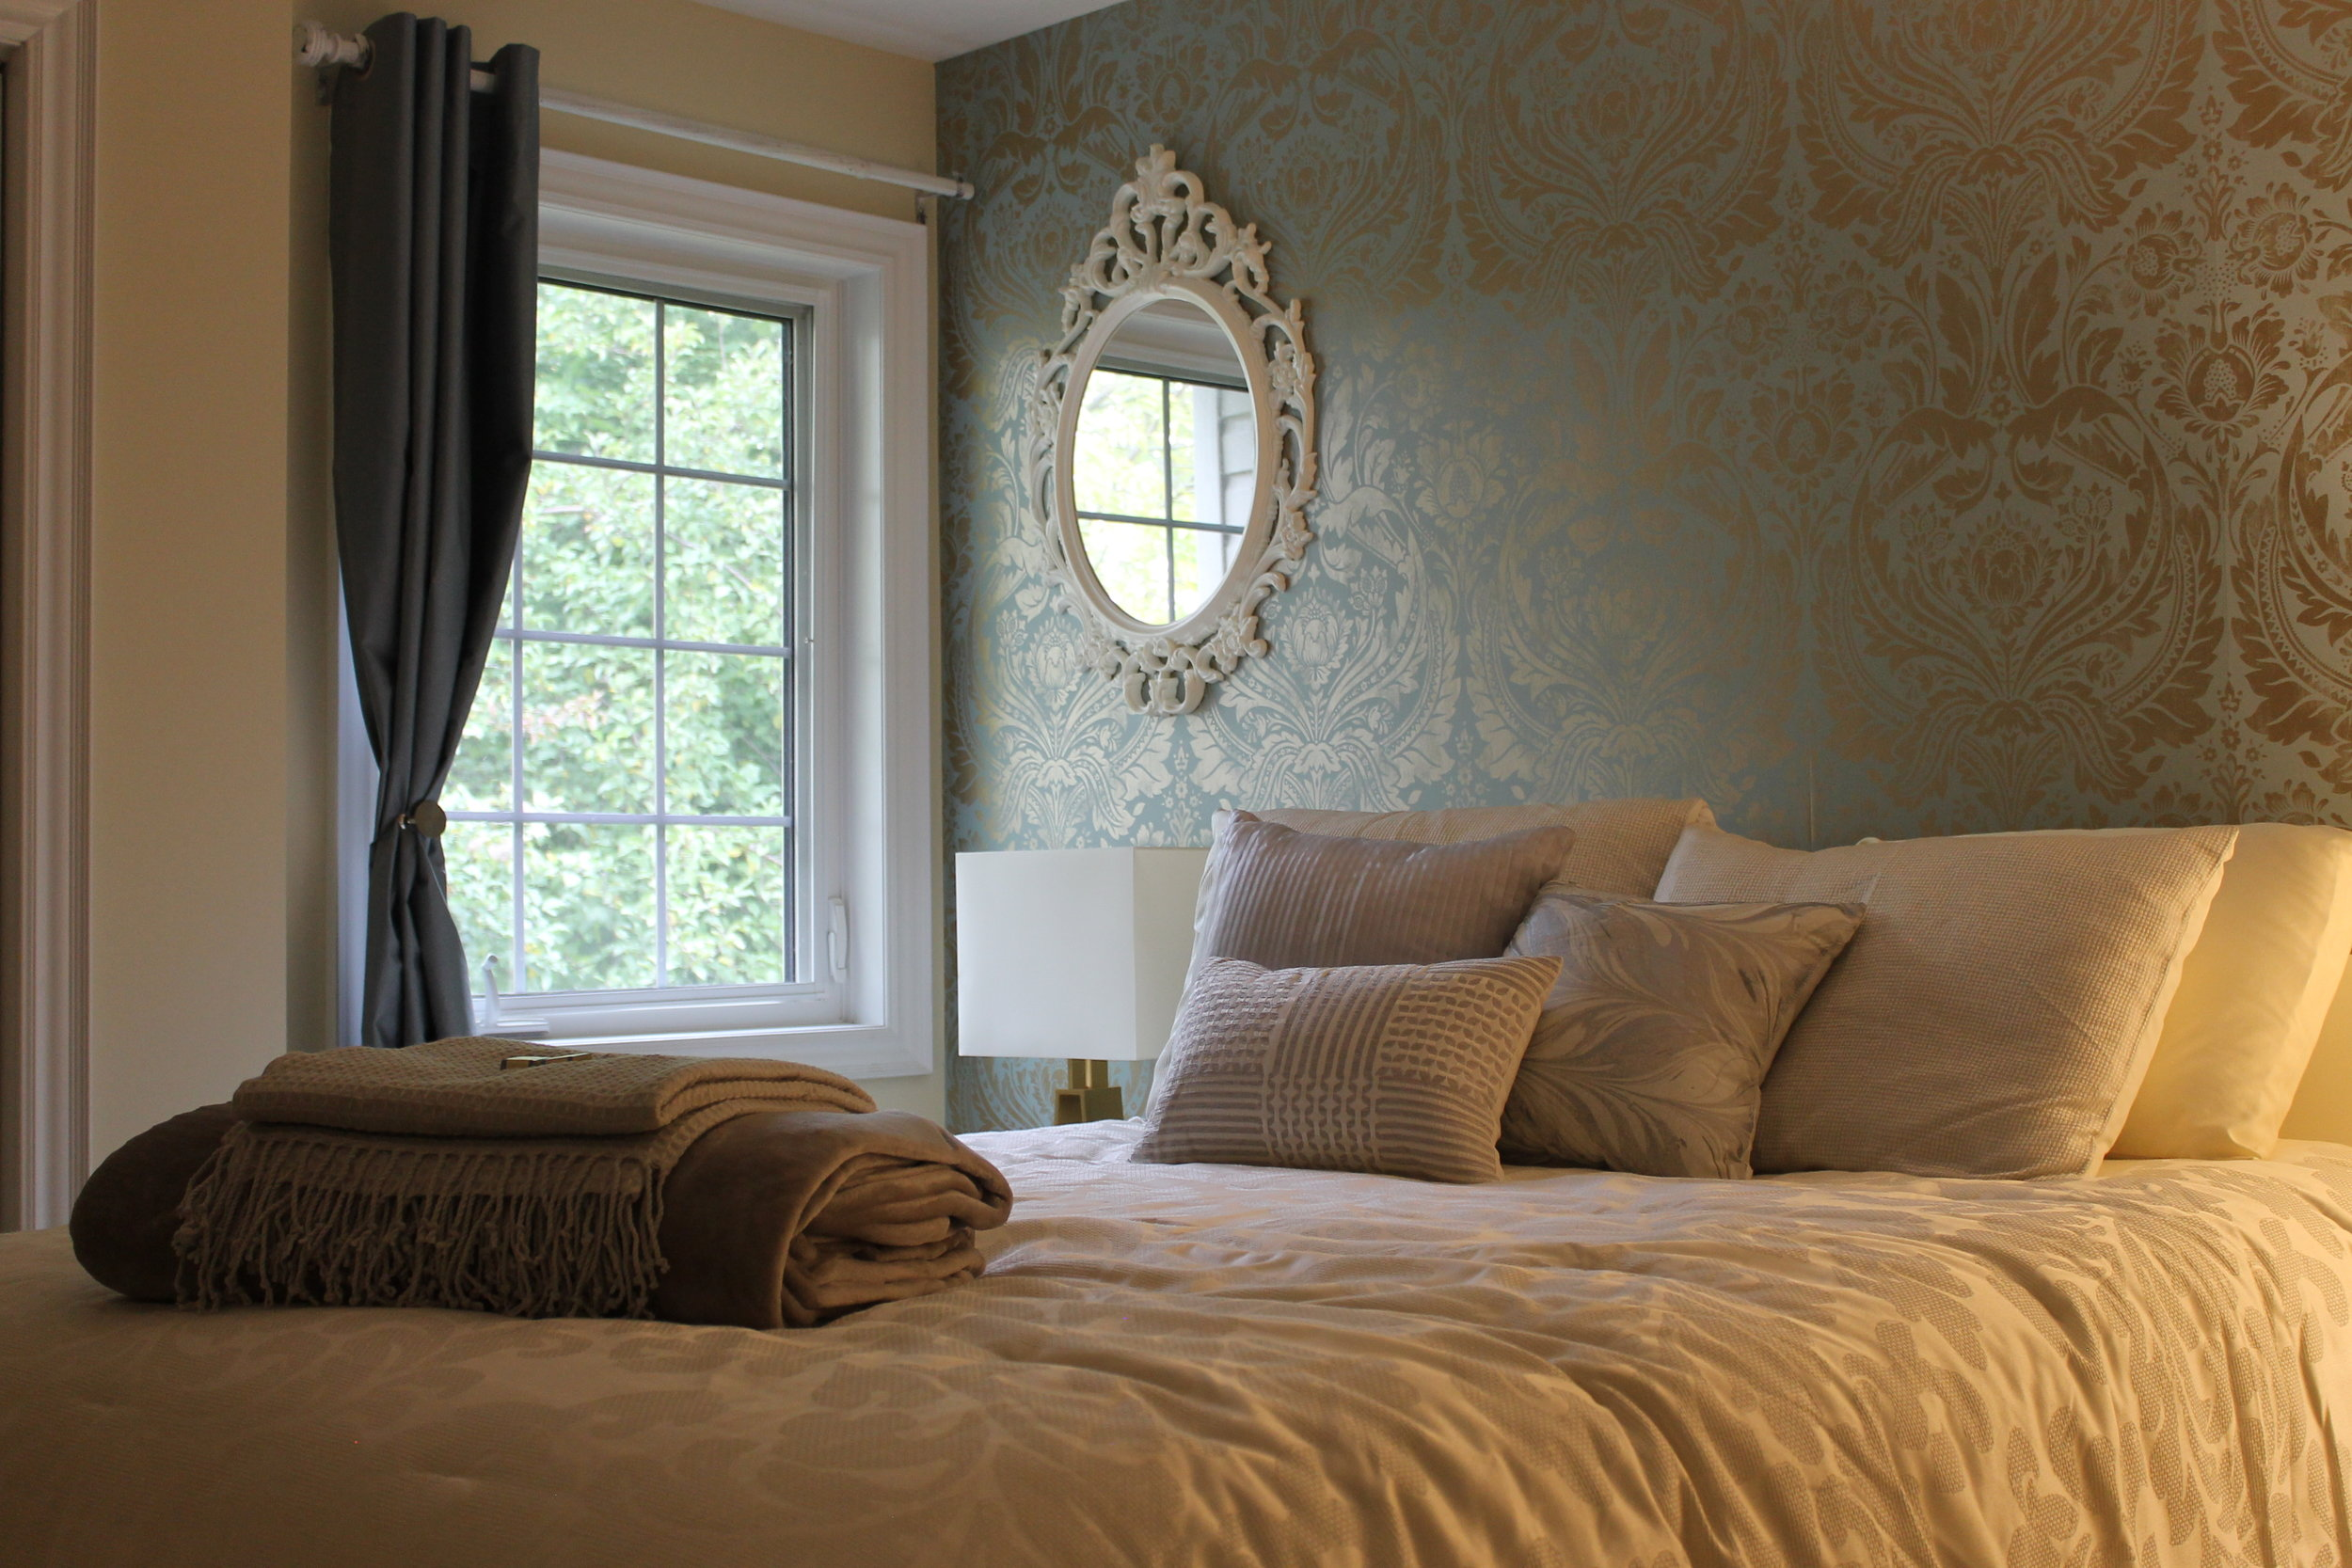 Chardonnay Room  Starting at $165 per night double occupancy